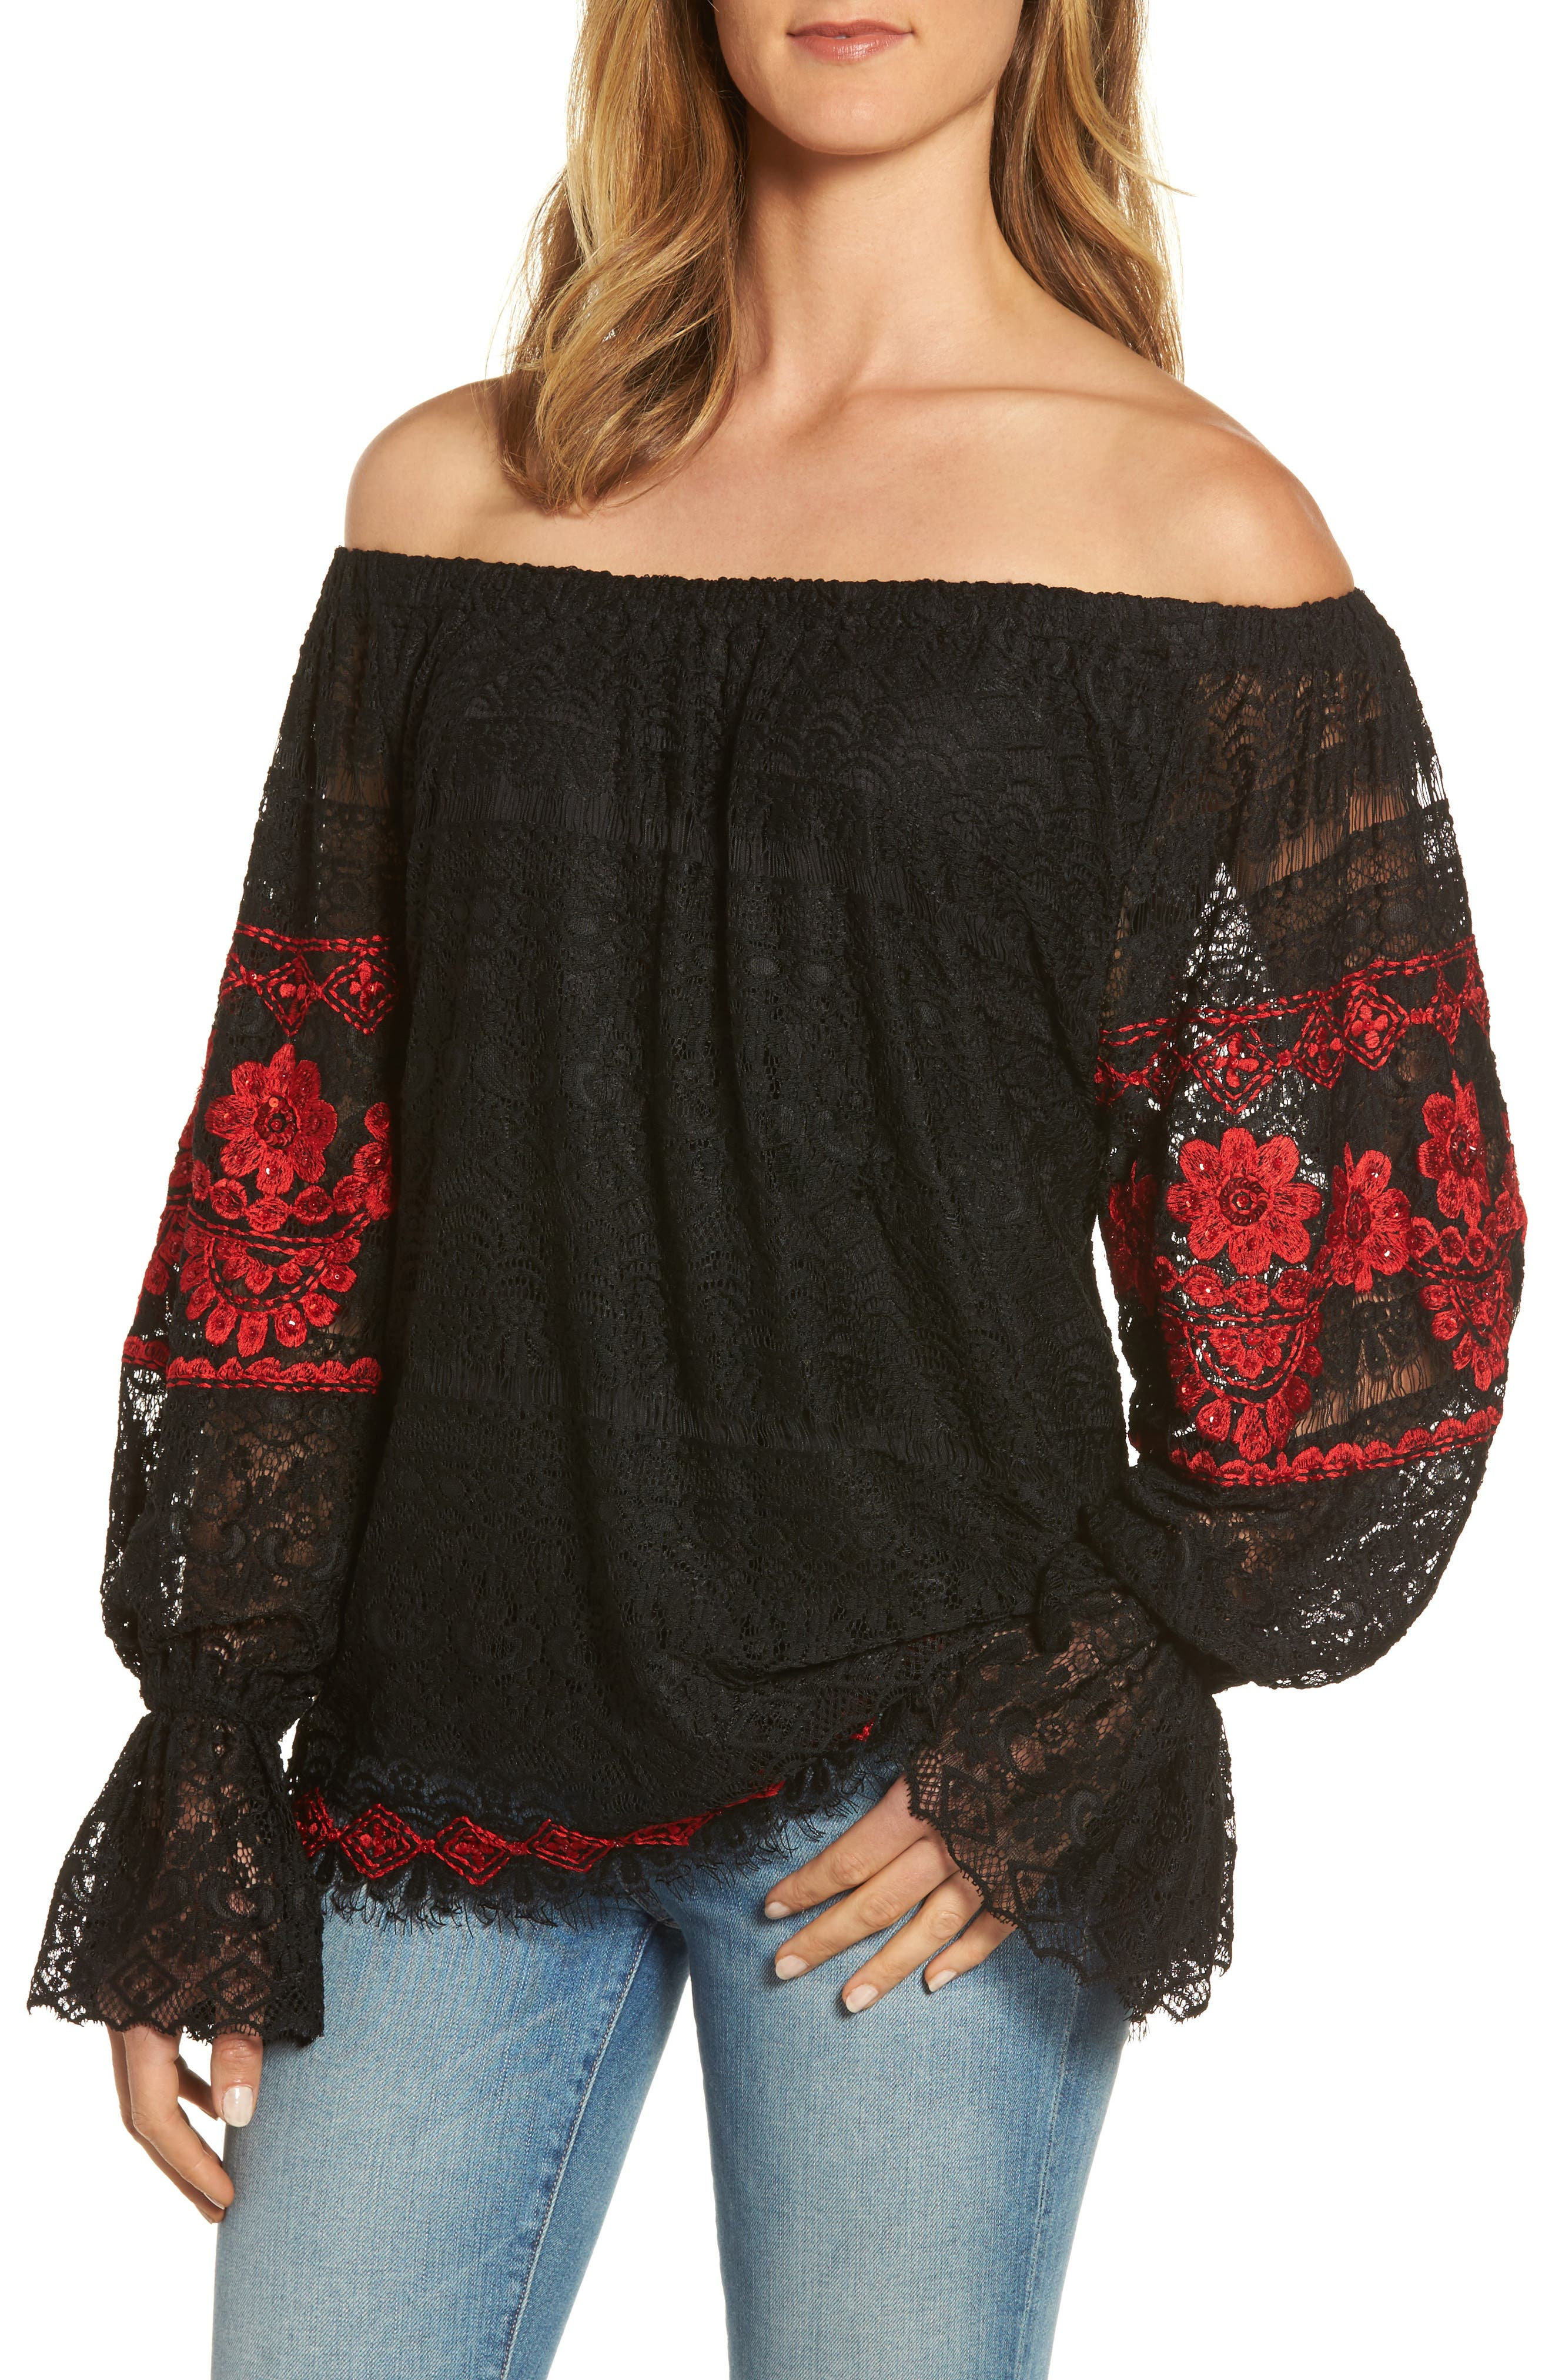 Clare Off the Shoulder Lace Top,                         Main,                         color, Black